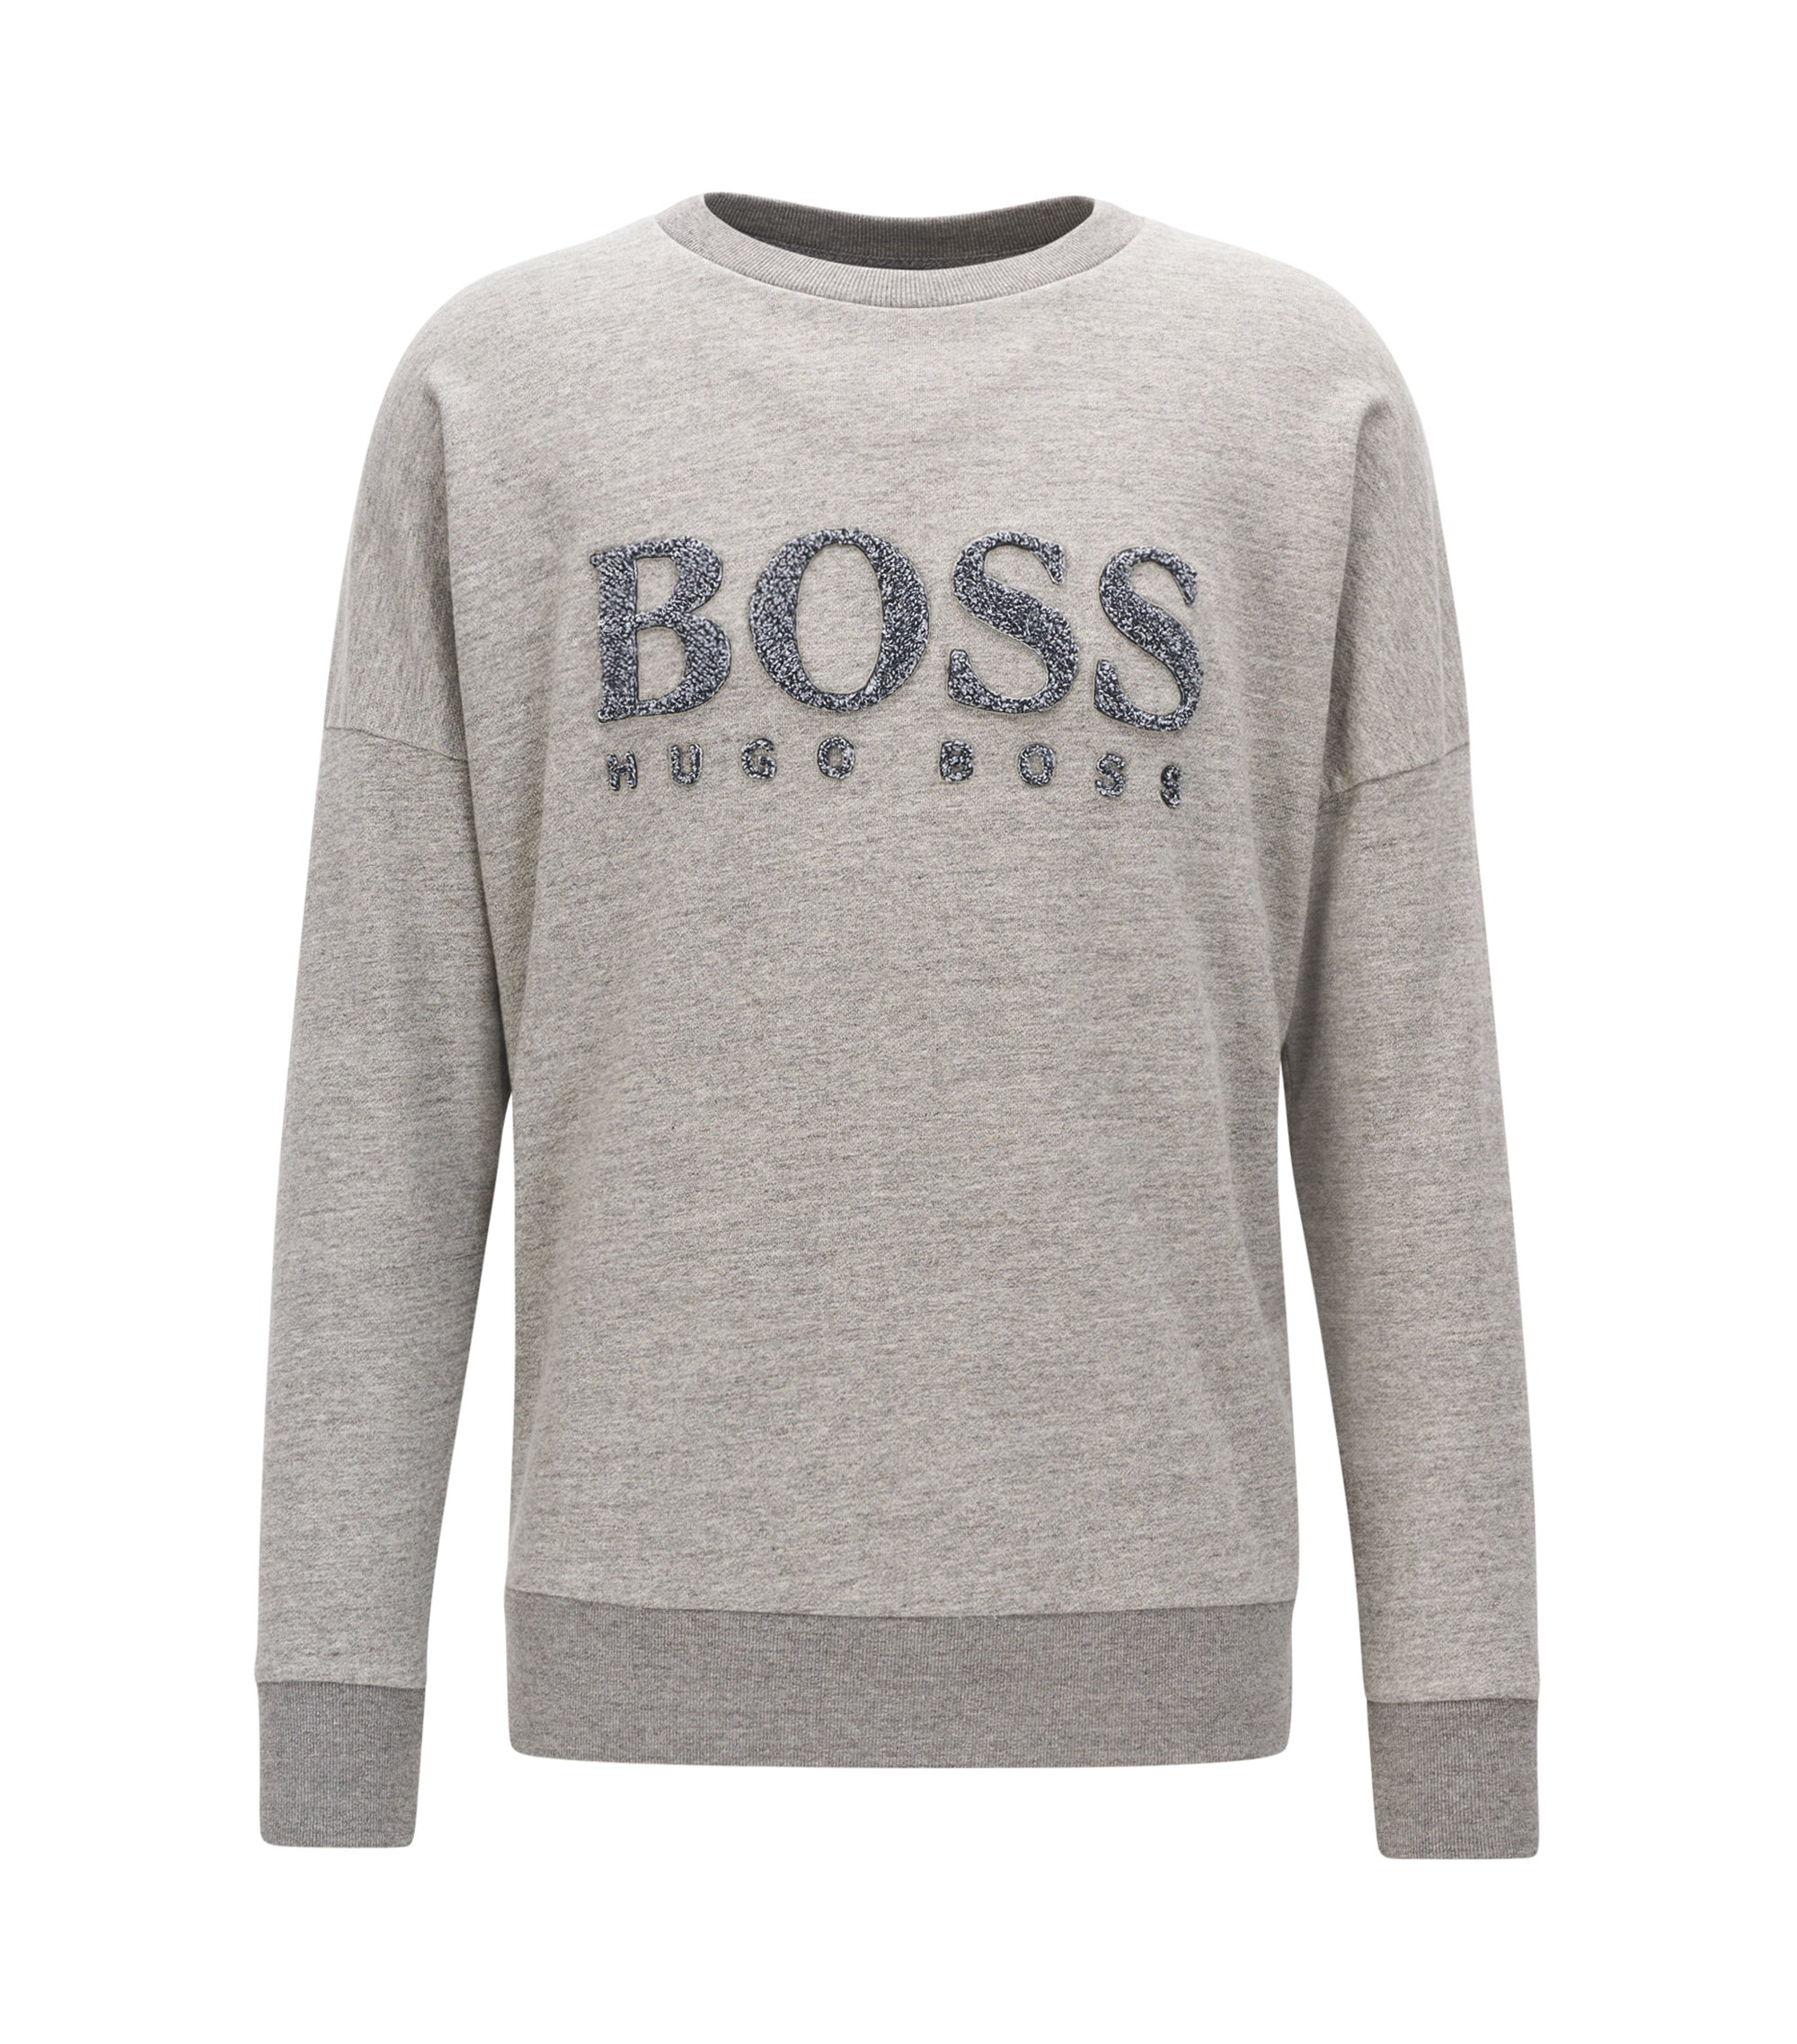 Sweat en coton molletonné French Terry avec logo, Gris chiné